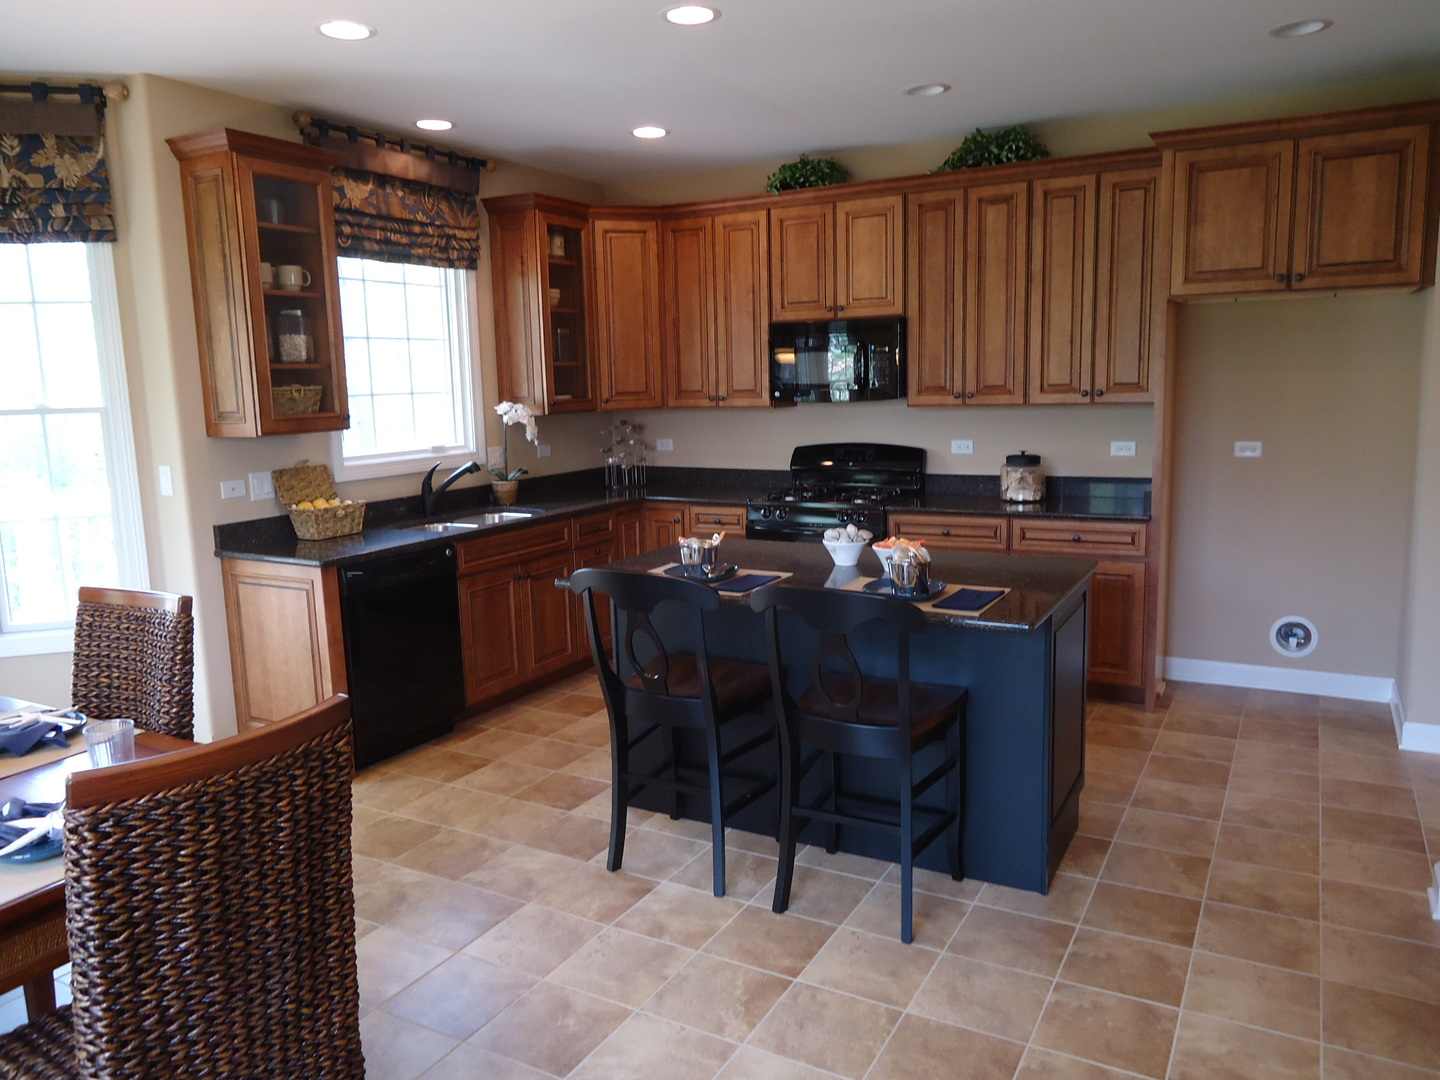 921 Woodglen Lane Lemont, IL 60439 - MLS #: 09772271